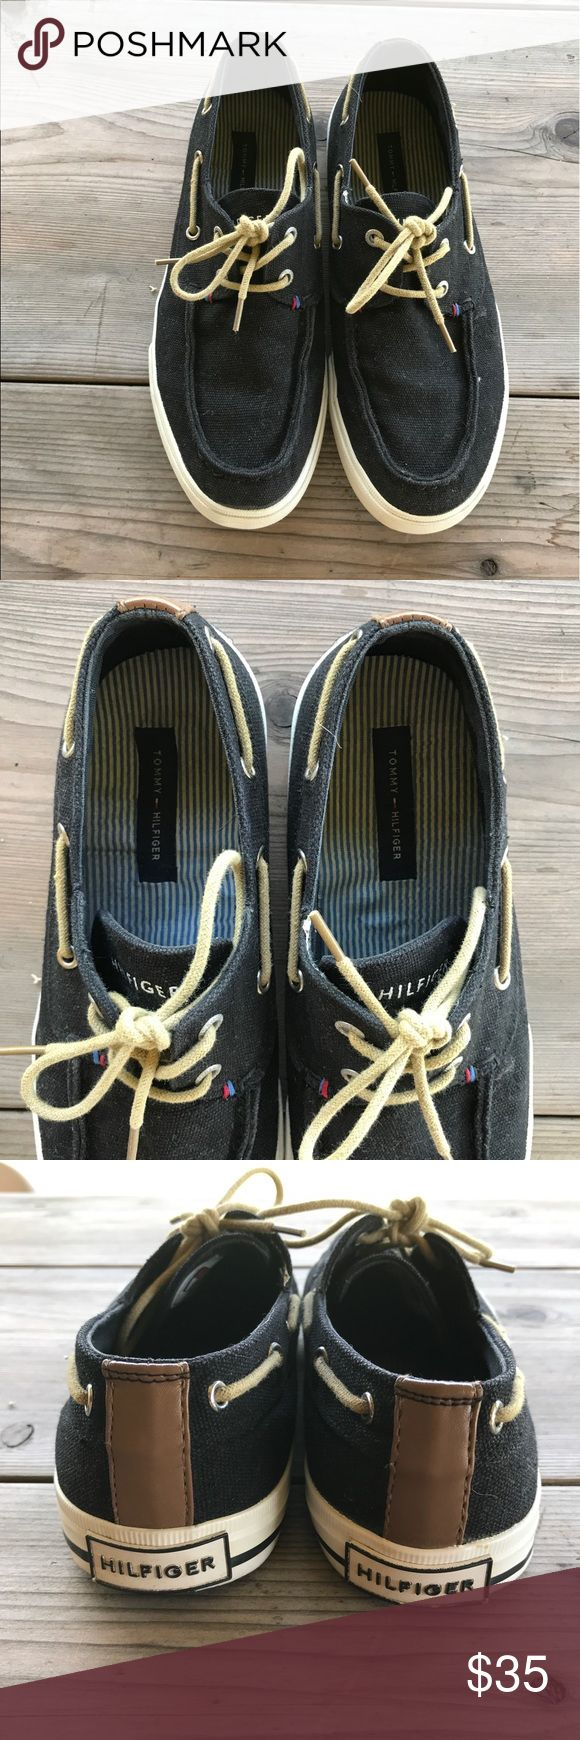 Tommy Hilfiger Black Boat Shoes Boat style tennis shoes from Tommy Hilfiger. Black canvas material with tan shoe laces. Size 8. A little wear and tear on the soles but only wore a few times! Really comfortable and easy to slip on when you're on the go! Let us know if you have any questions :) Tommy Hilfiger Shoes Sneakers